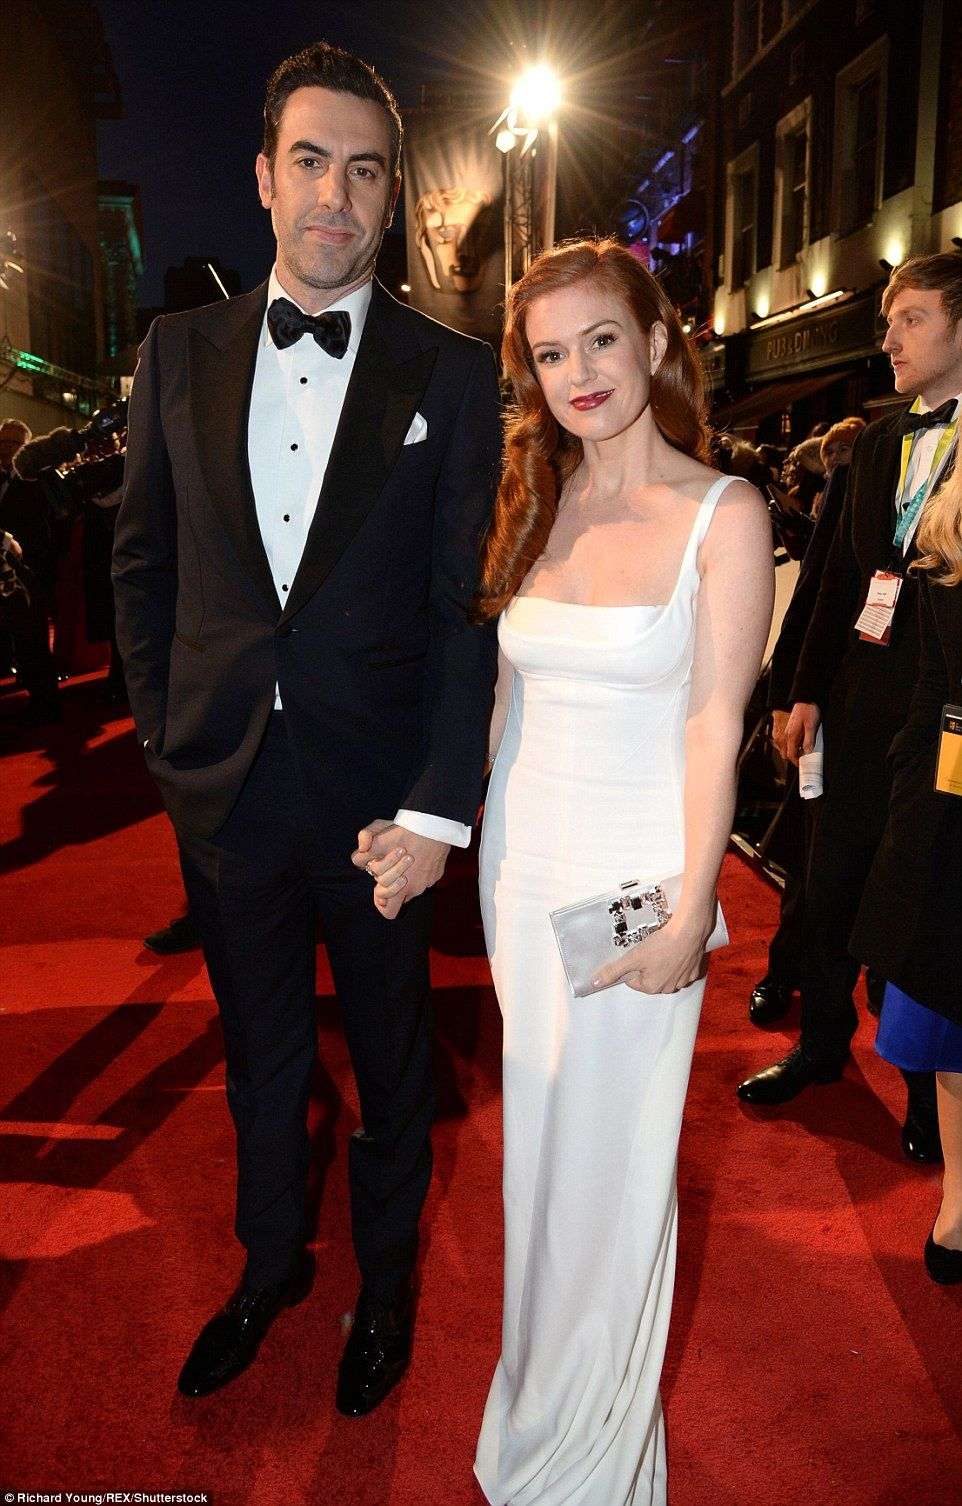 Glamour gowns u frock horrors at the baftas sacha baron cohen